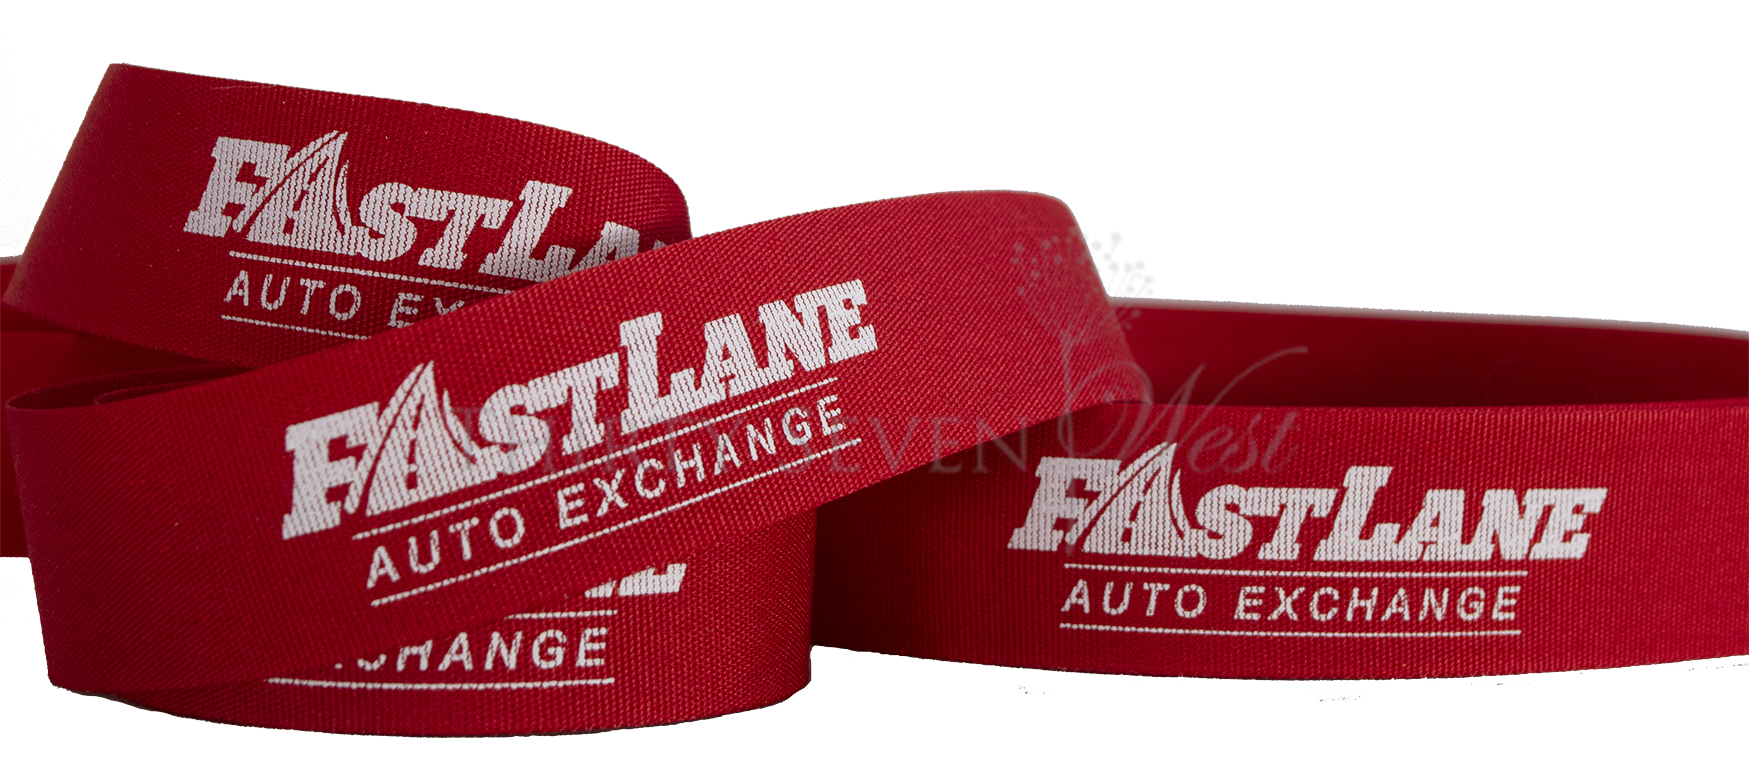 Matte Texture Ribbon, Custom Logo Ribbon, Company Logo Ribbon, Logo RIbbon, Customized Ribbon with logo company, Texture Ribbon.